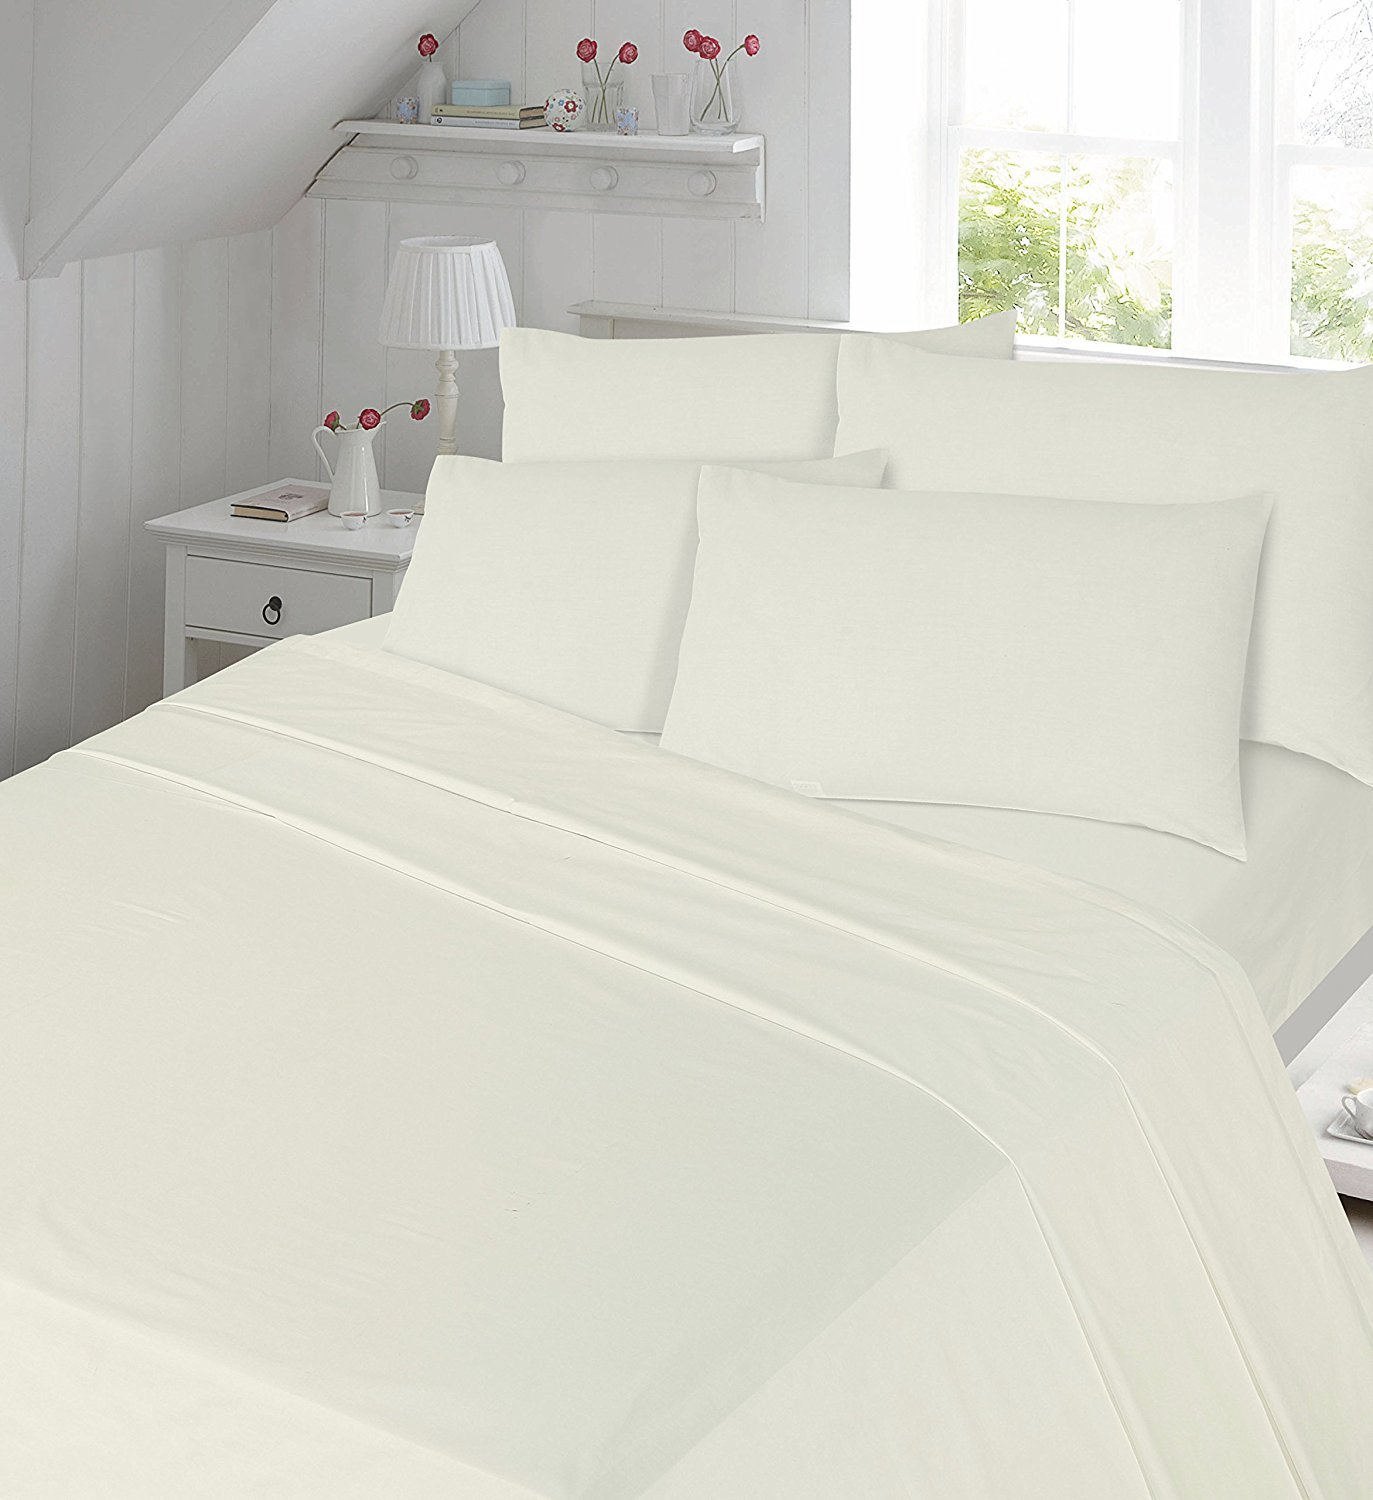 Cream Flannelette Sheet Set King size Fitted Sheet, Flat Sheet , 2x Pillowcases Bed Sheet Set King Size Comfy Nights